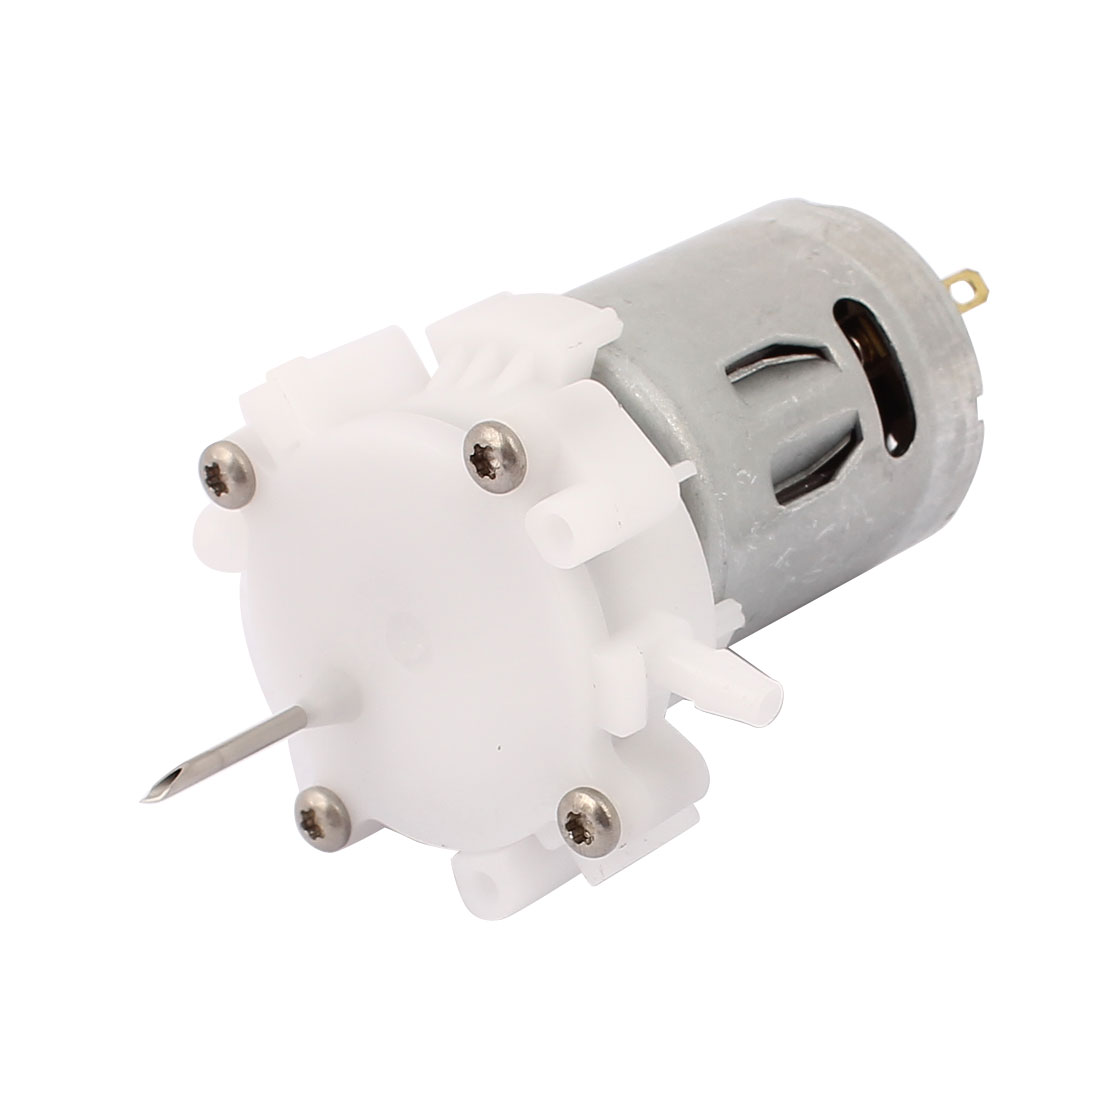 Uxcell(R) DC 3-6V Water Pumping Electric Micro Pump Motor RS-360